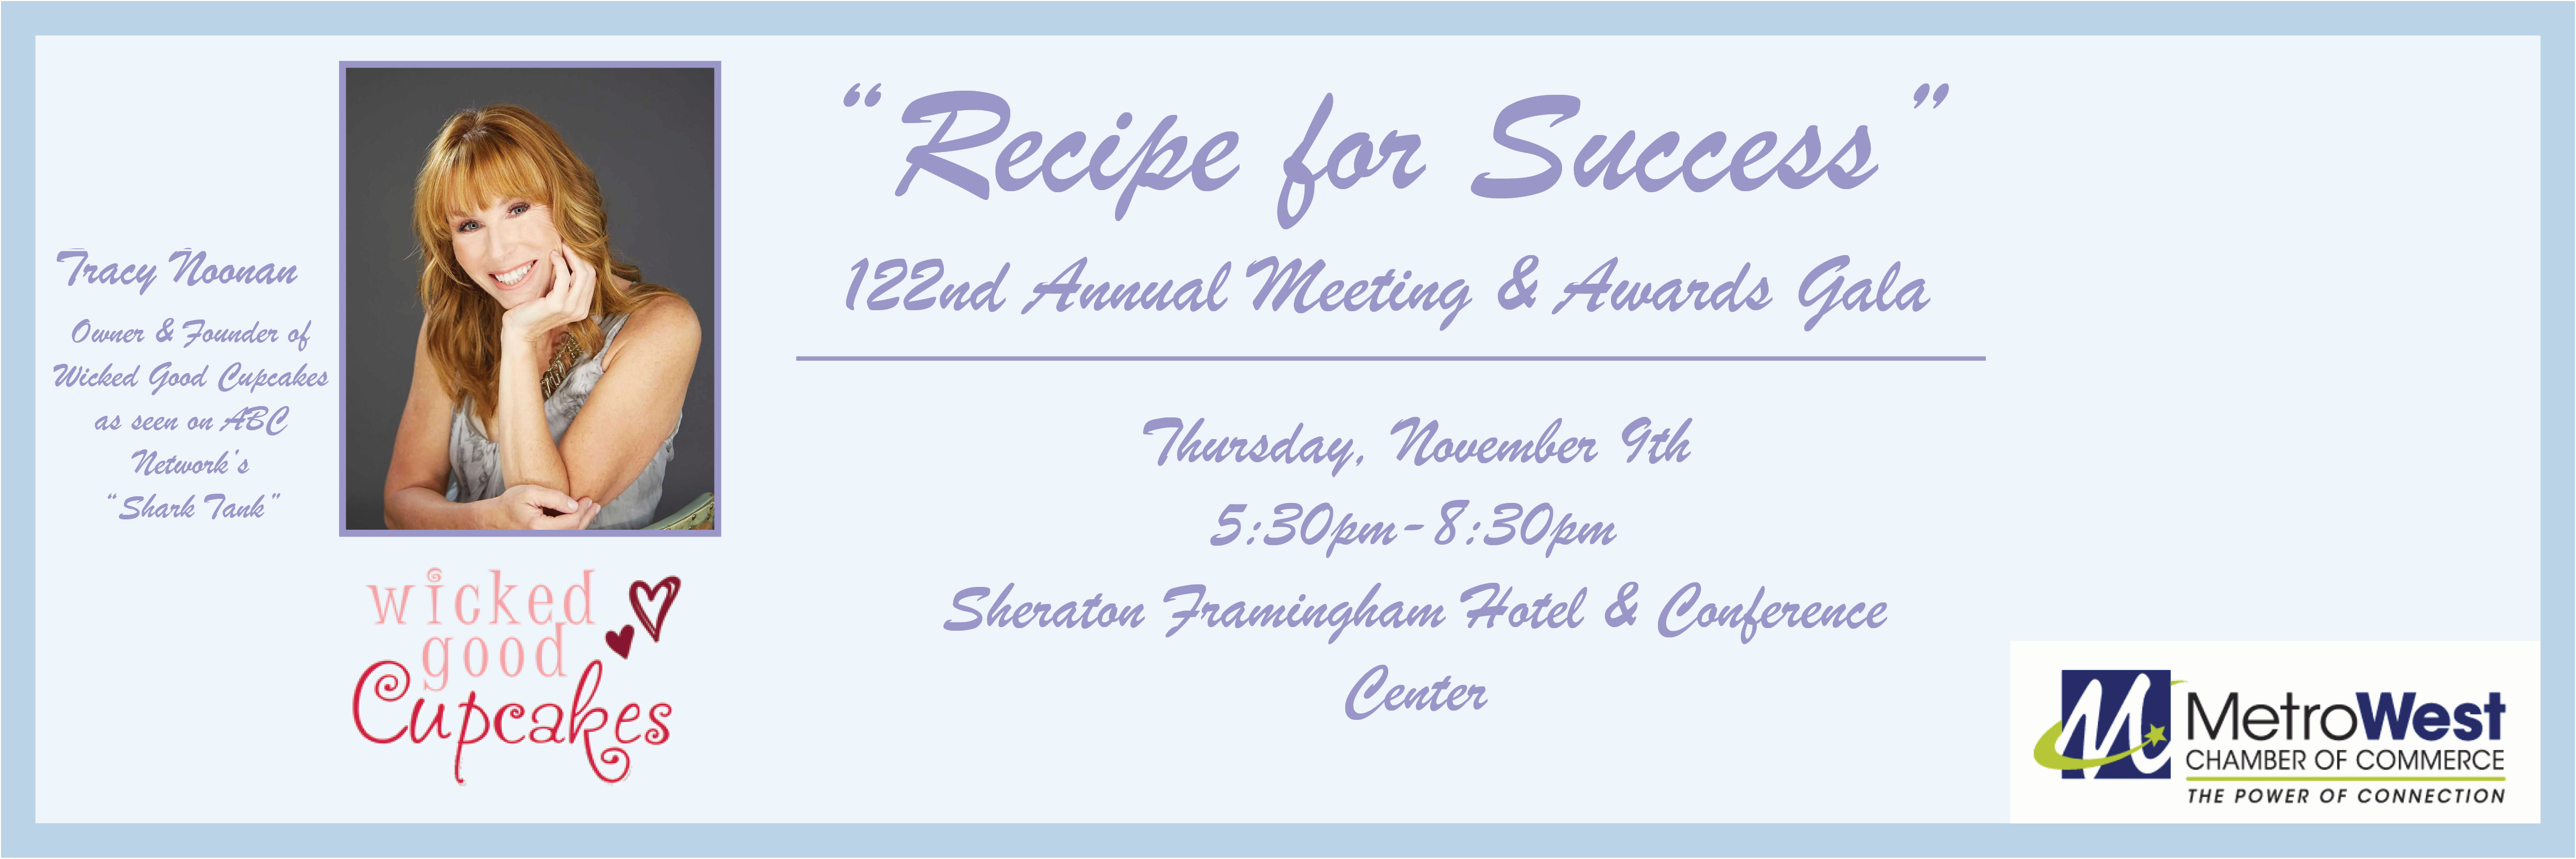 122nd-Annual-Meeting-and-Gala-Recipe-for-Success.jpg